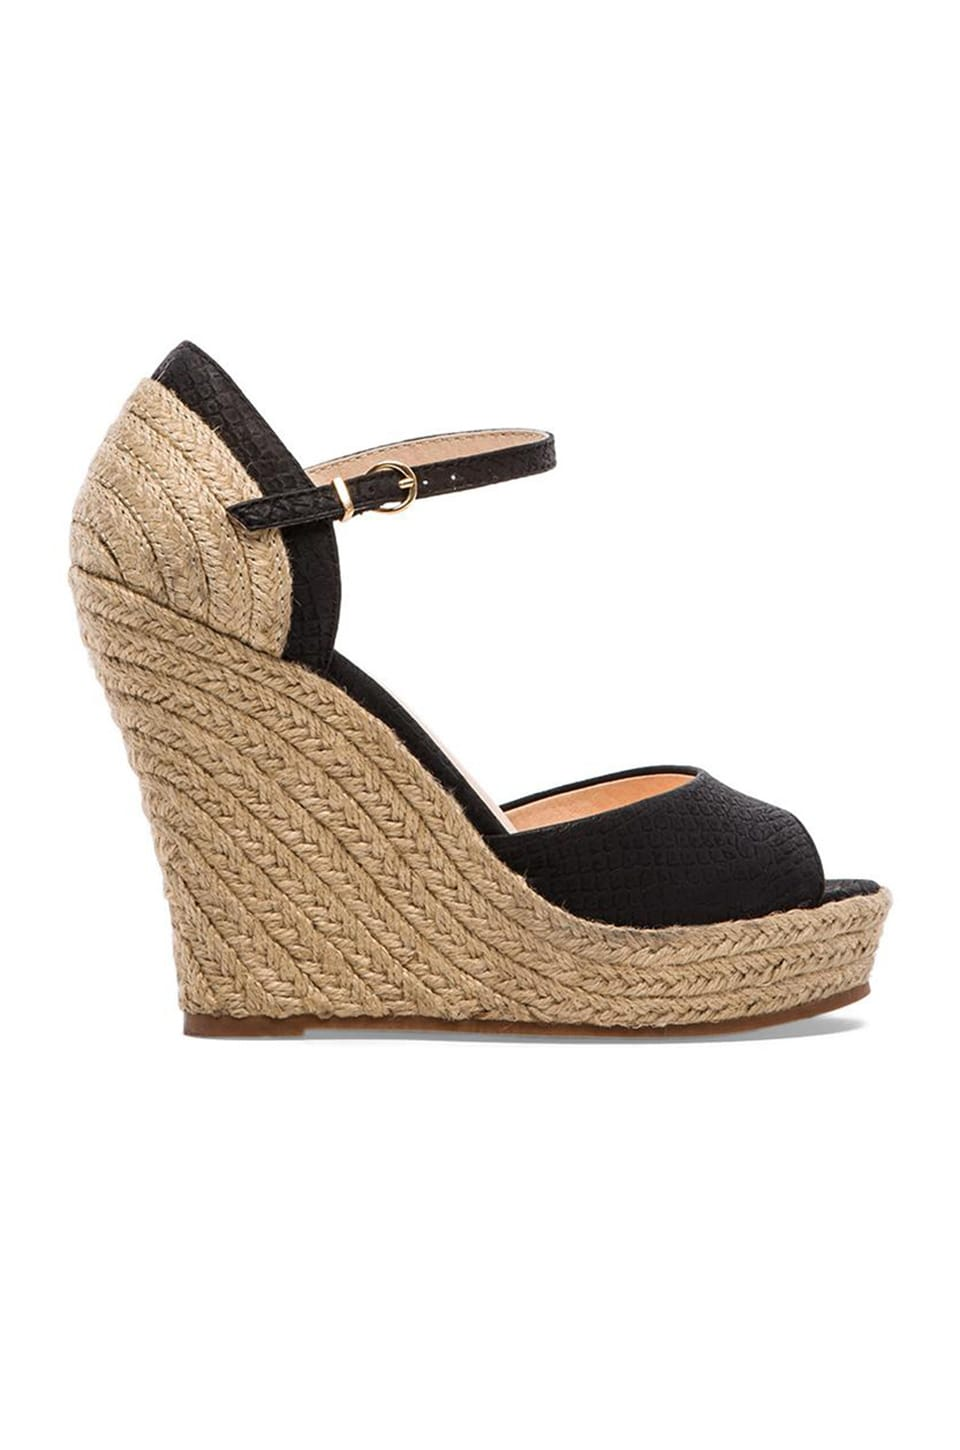 Seychelles Catch Your Breath Wedge in Black